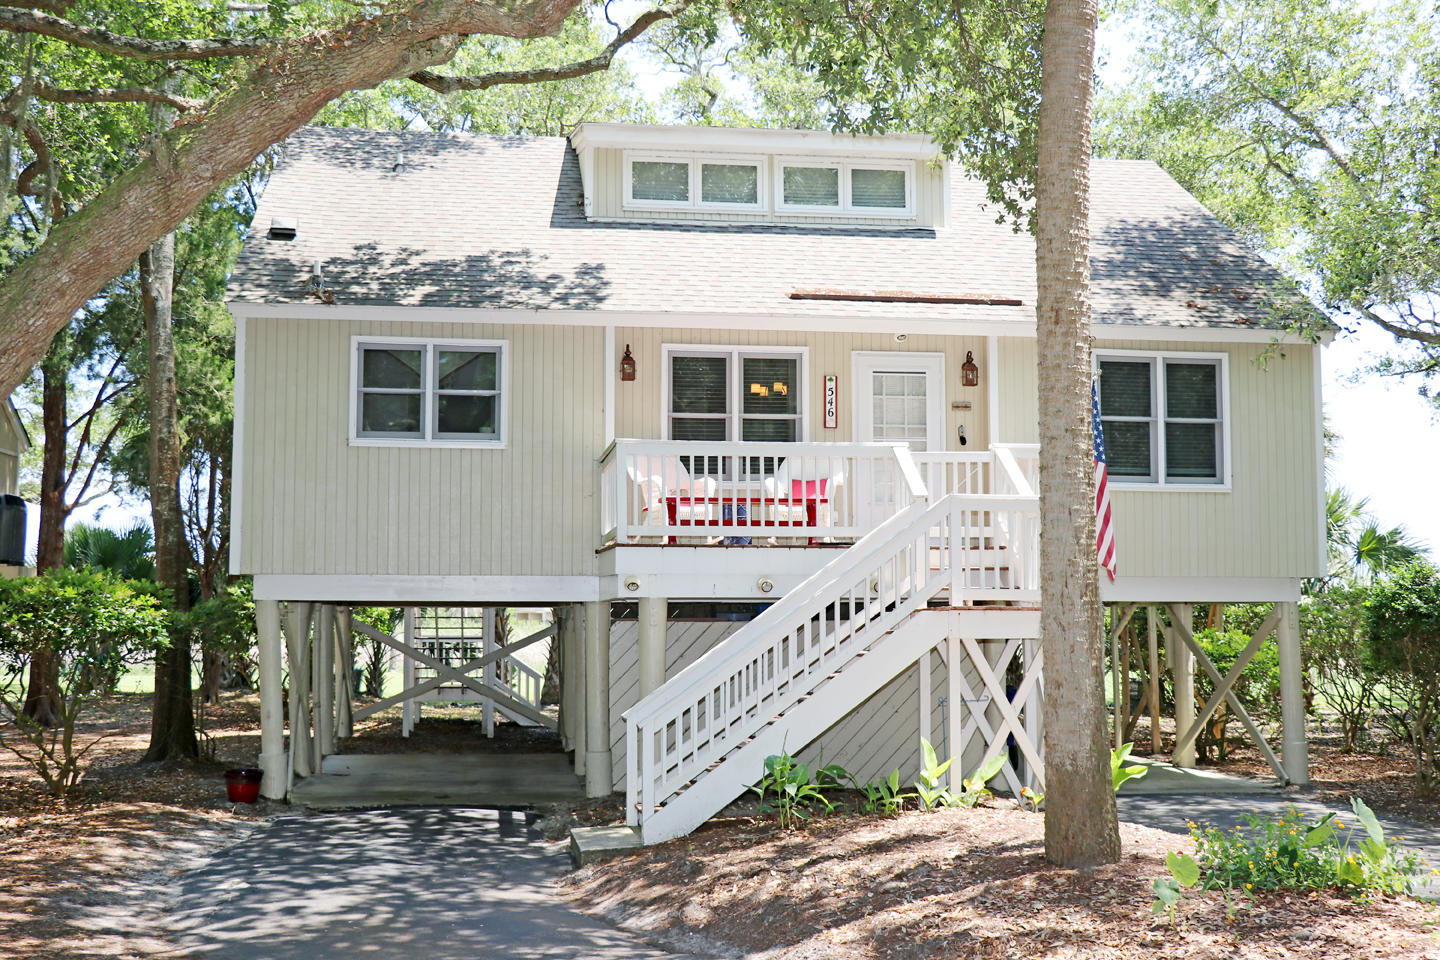 Tarpon Pond Cottages Homes For Sale - 546 Cobby Creek, Seabrook Island, SC - 22